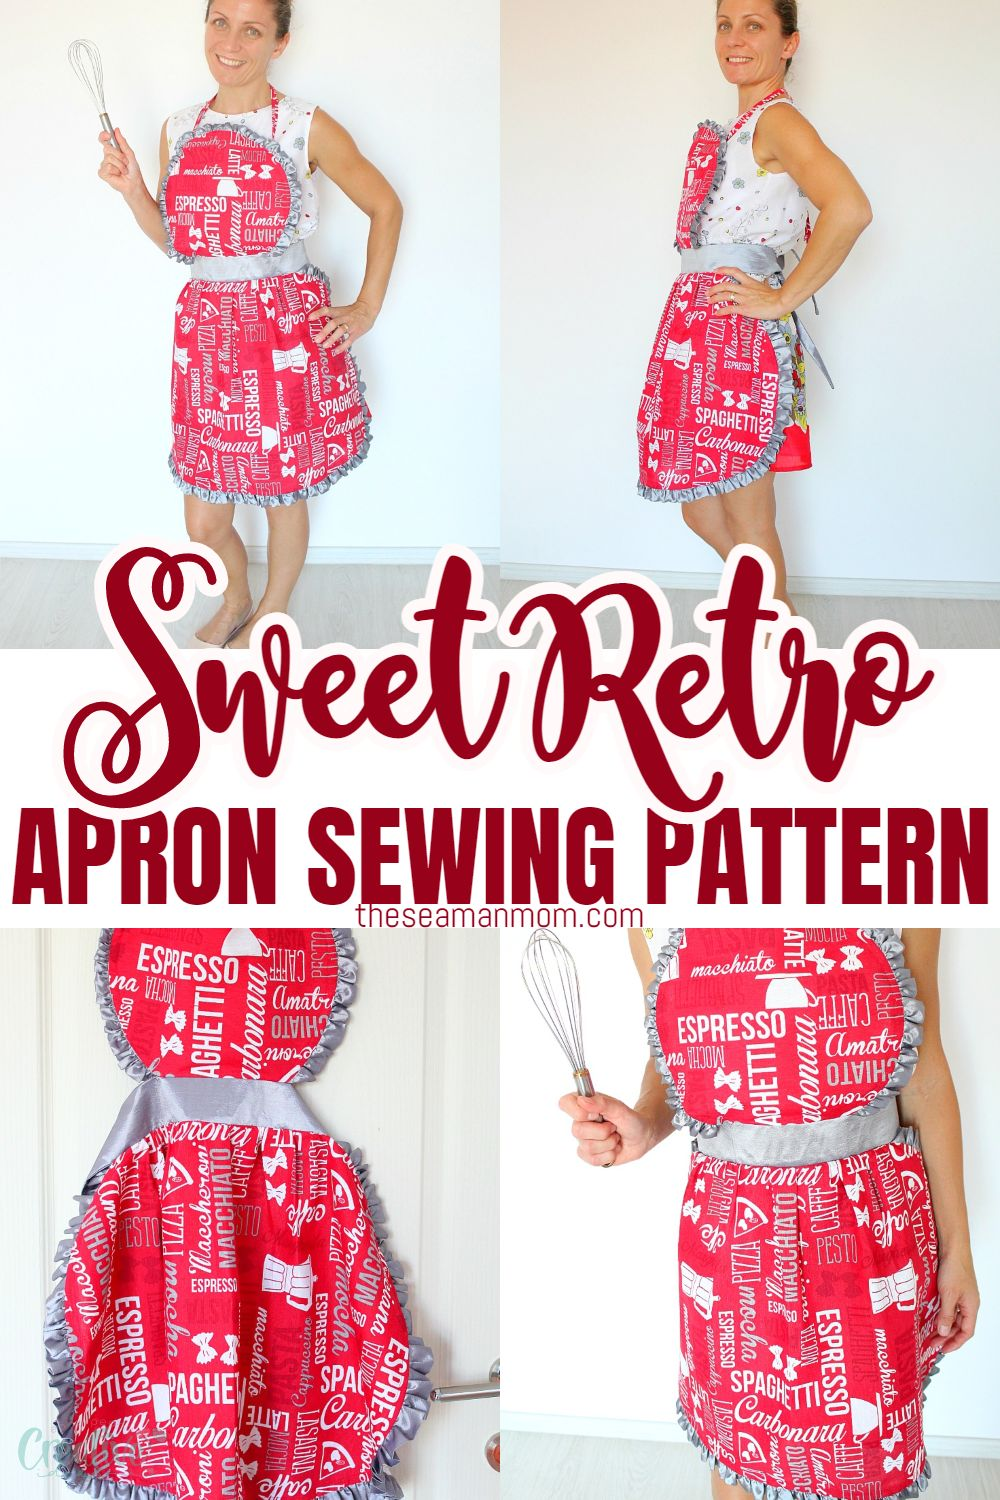 If you're looking for an apron sewing pattern with a little retro flair that is sweet looking, fun and easy to make, this Vintage Apron Pattern is it! This darling ruffled apron pattern is a great project for beginners! via @petroneagu